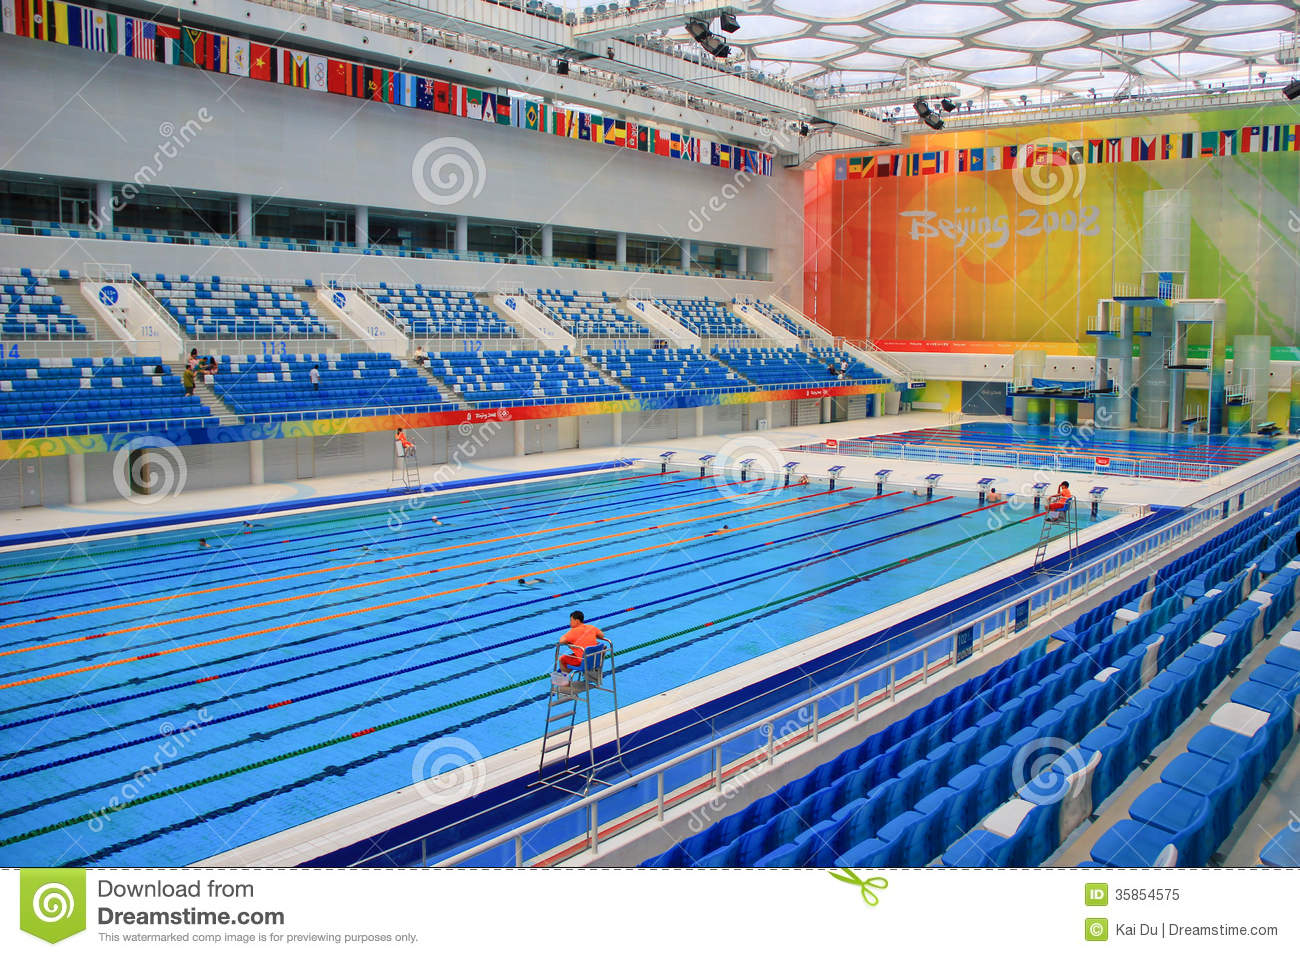 Beijing 2008 olympic swimming pool editorial image image of games cool 35854575 for Beijing swimming pool olympics